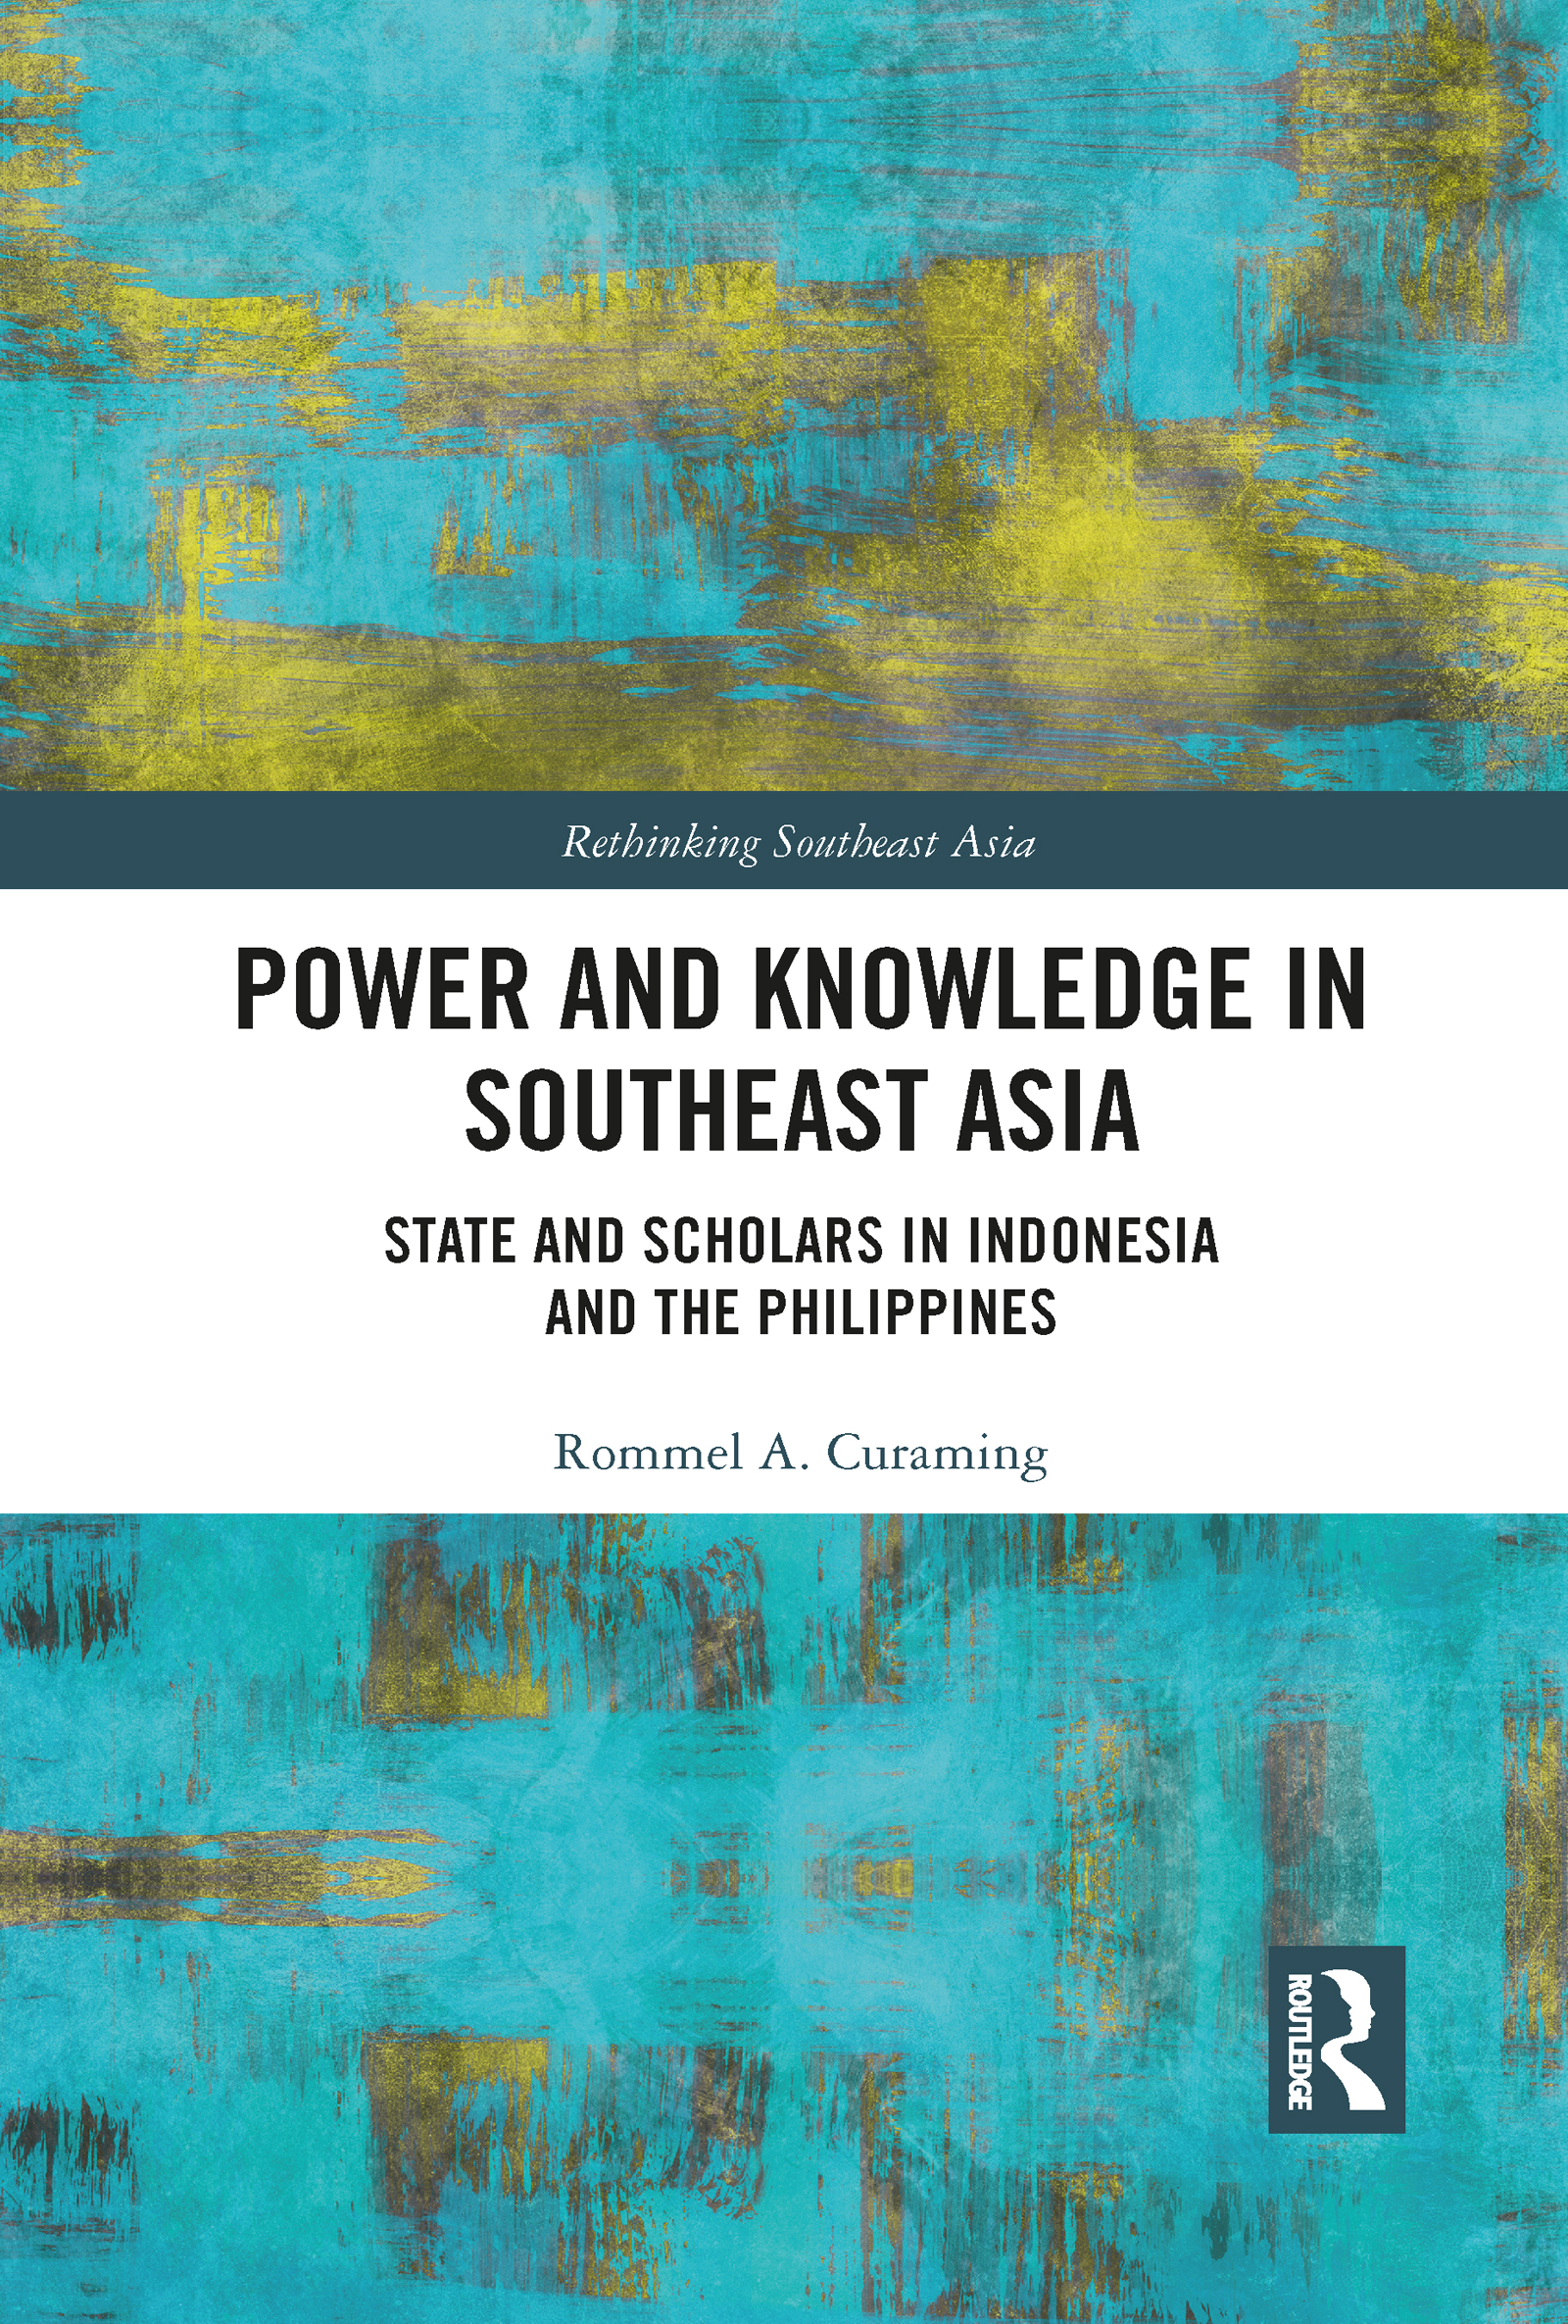 Power and Knowledge in Southeast Asia